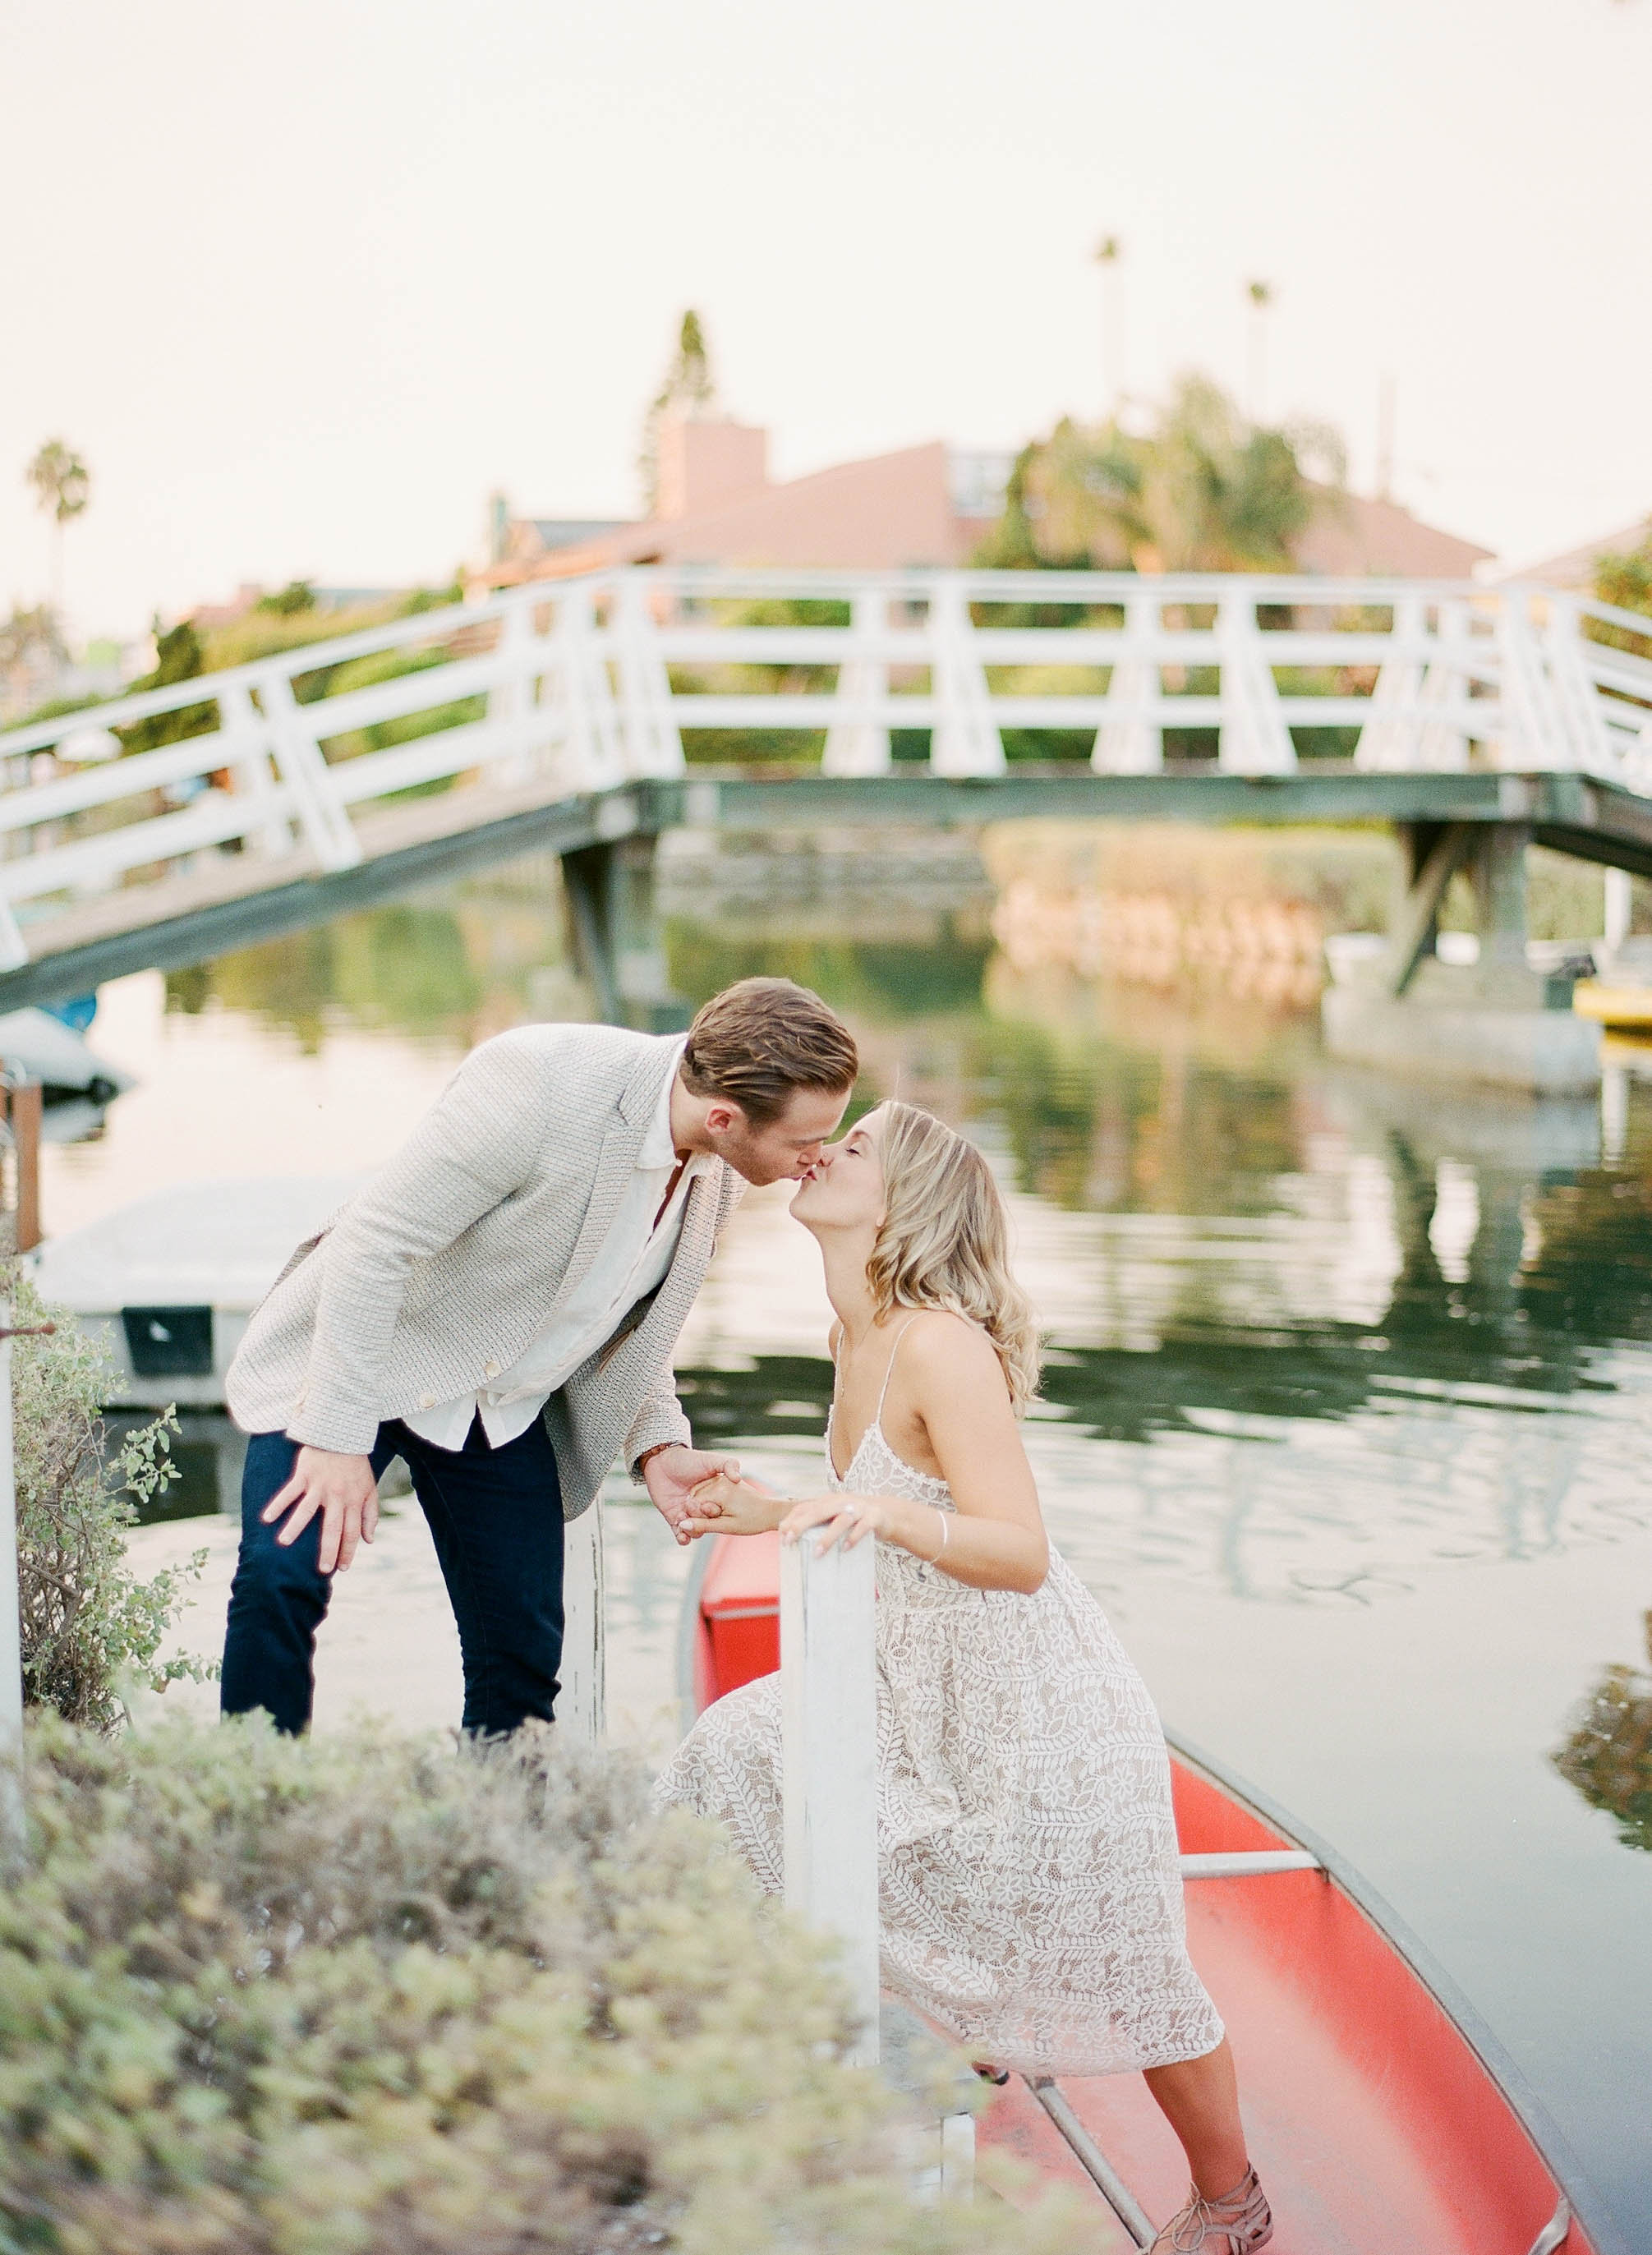 Venice Beach and Los Angeles wedding photography